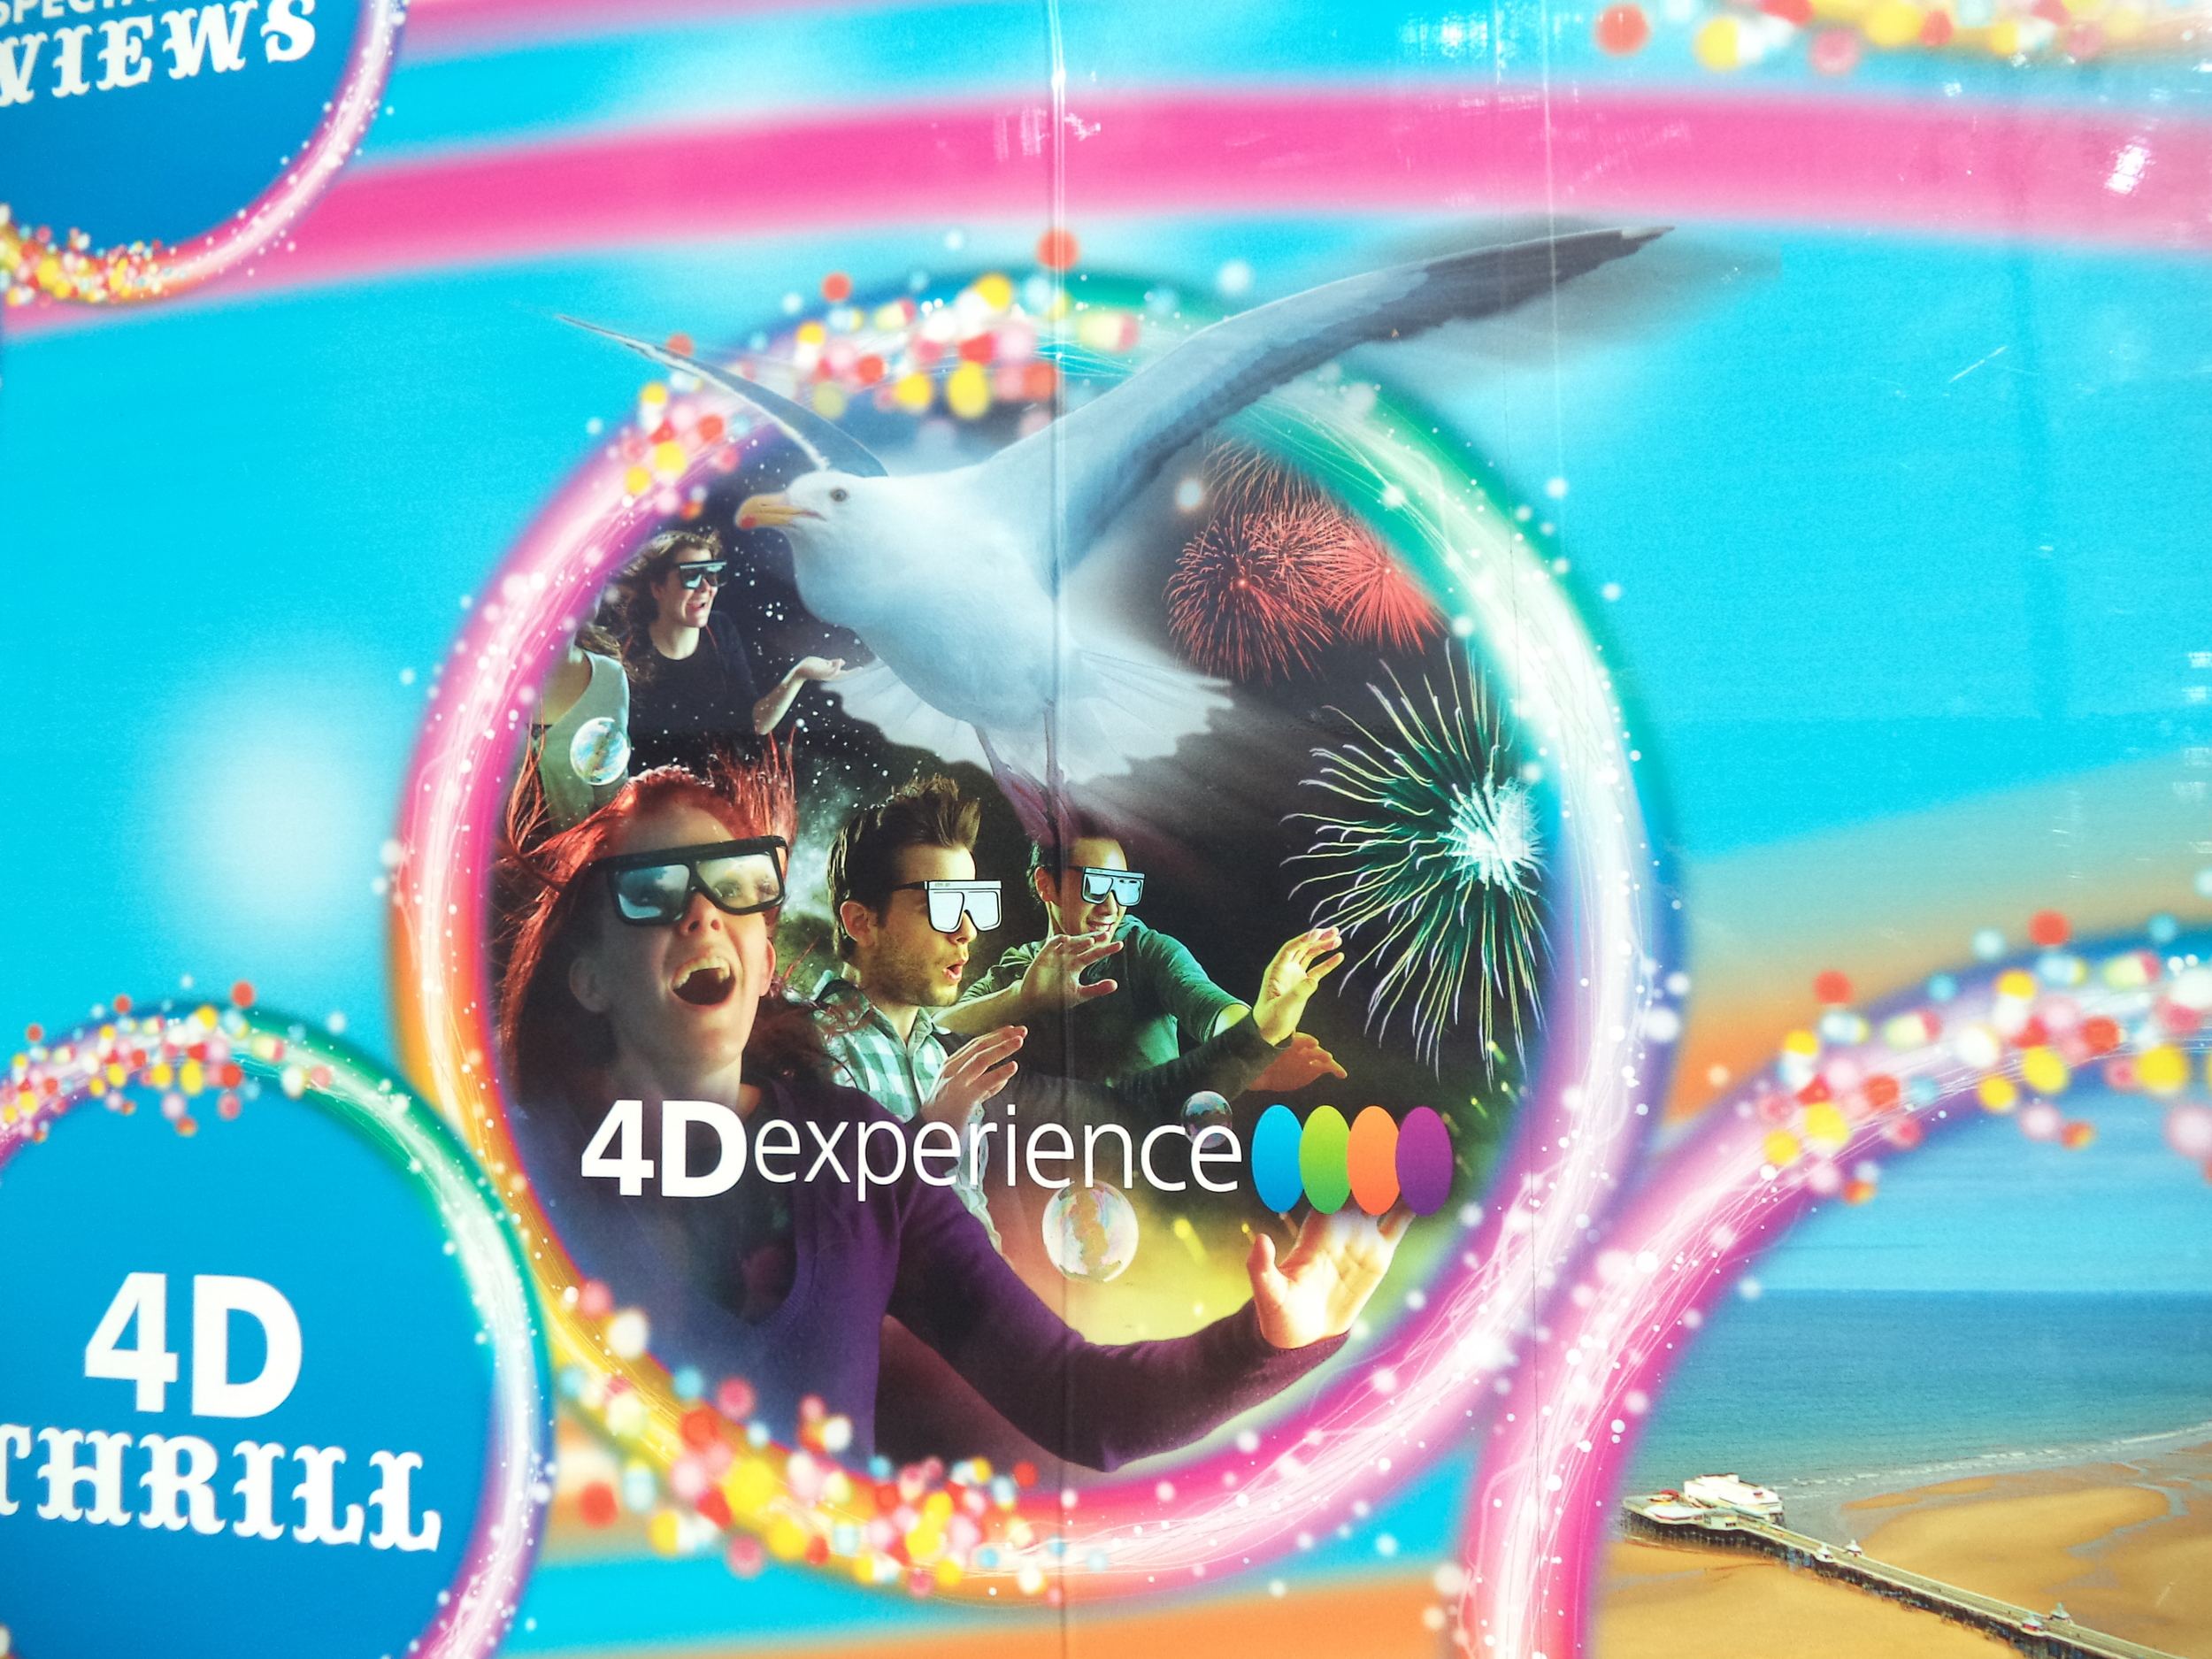 Blackpool Tower 4-D Experience